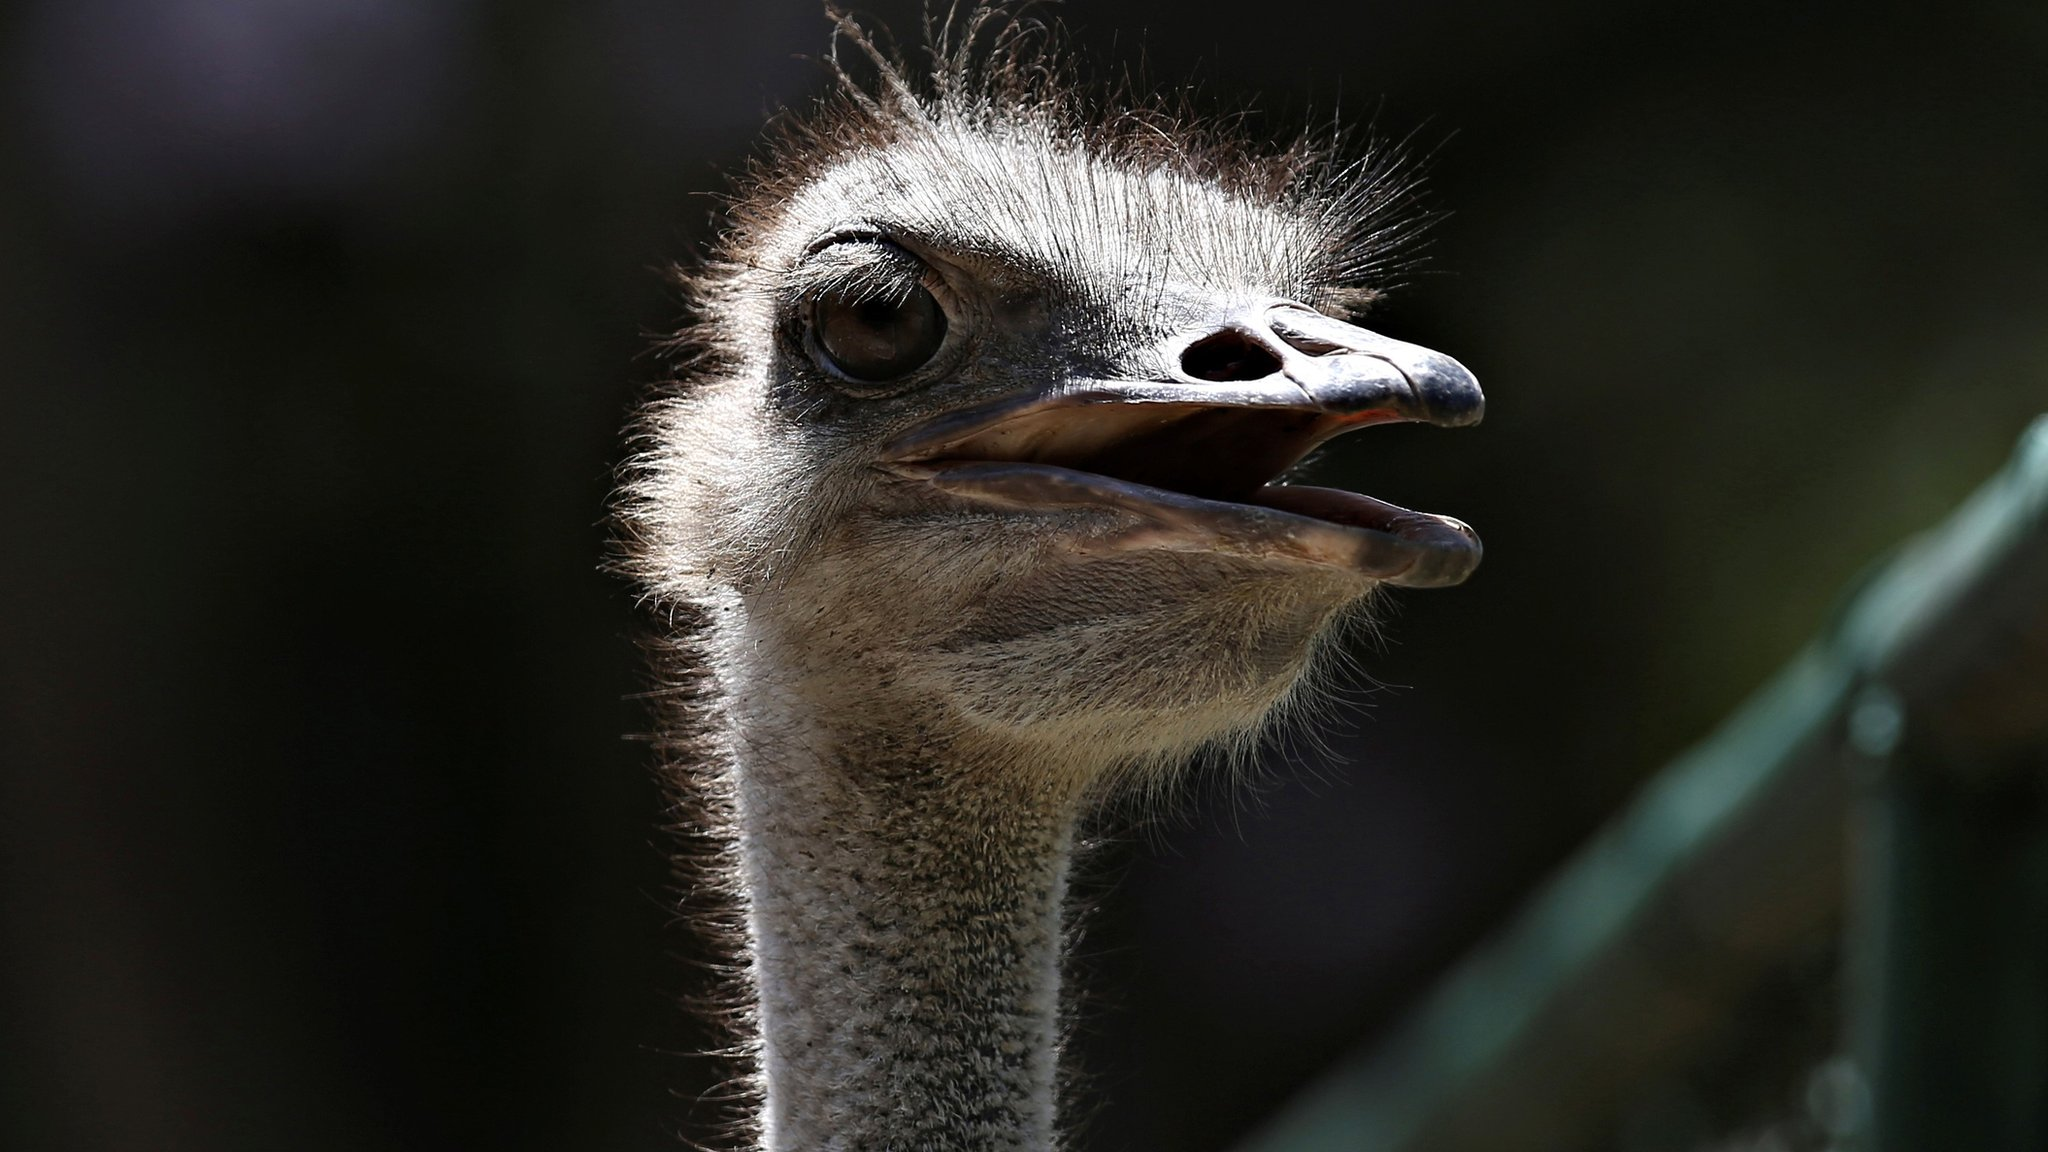 Cuba's government mocked by stampede of ostrich memes